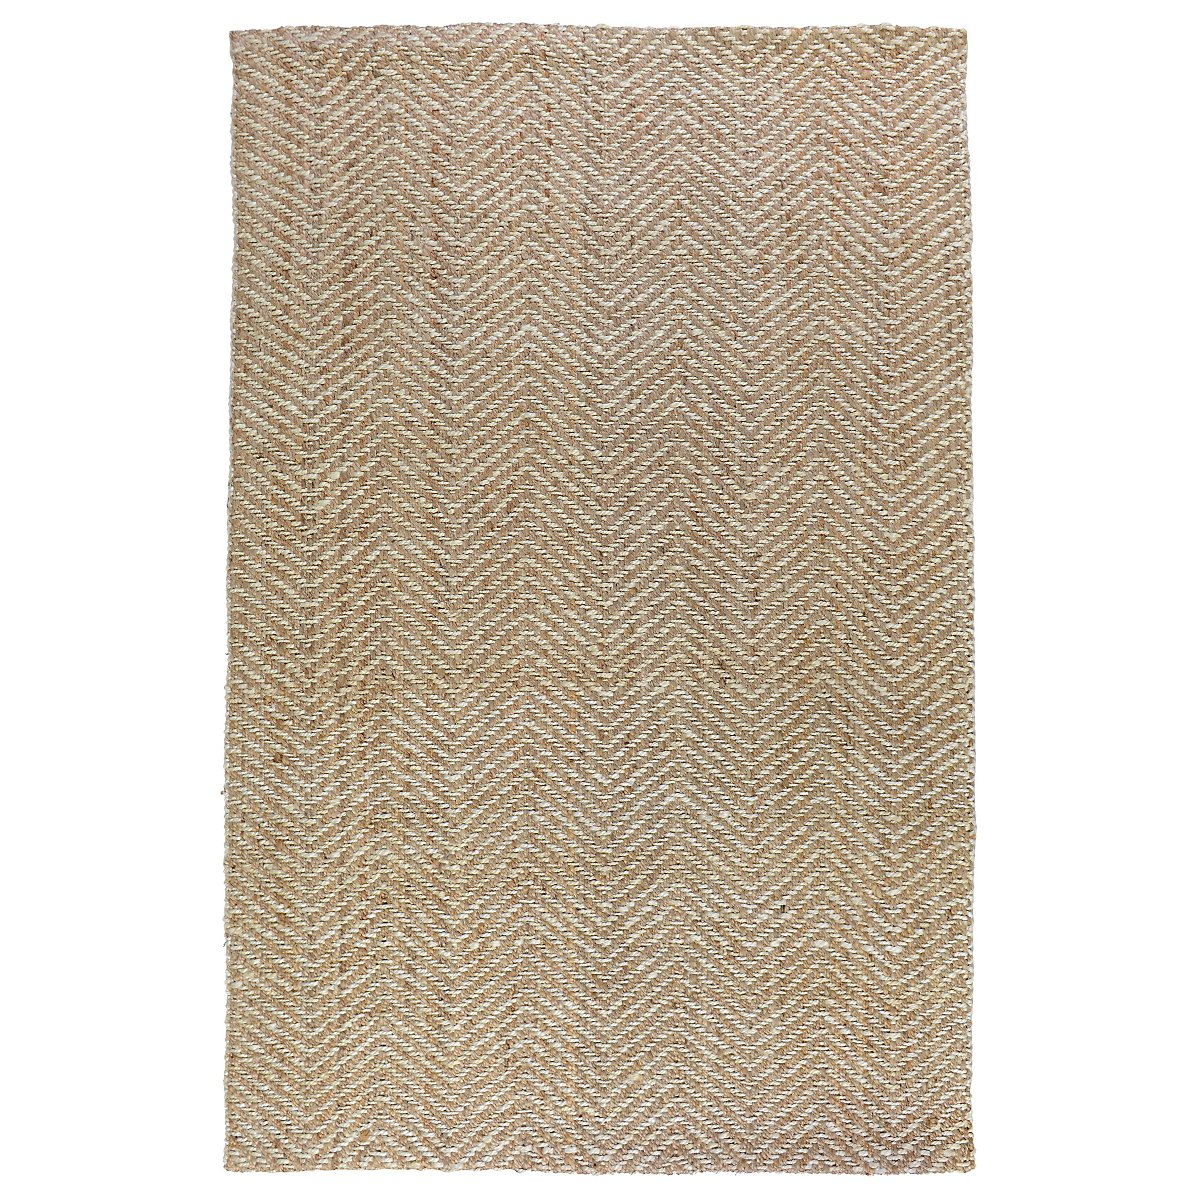 Herringbone White 8X10 Area Rug